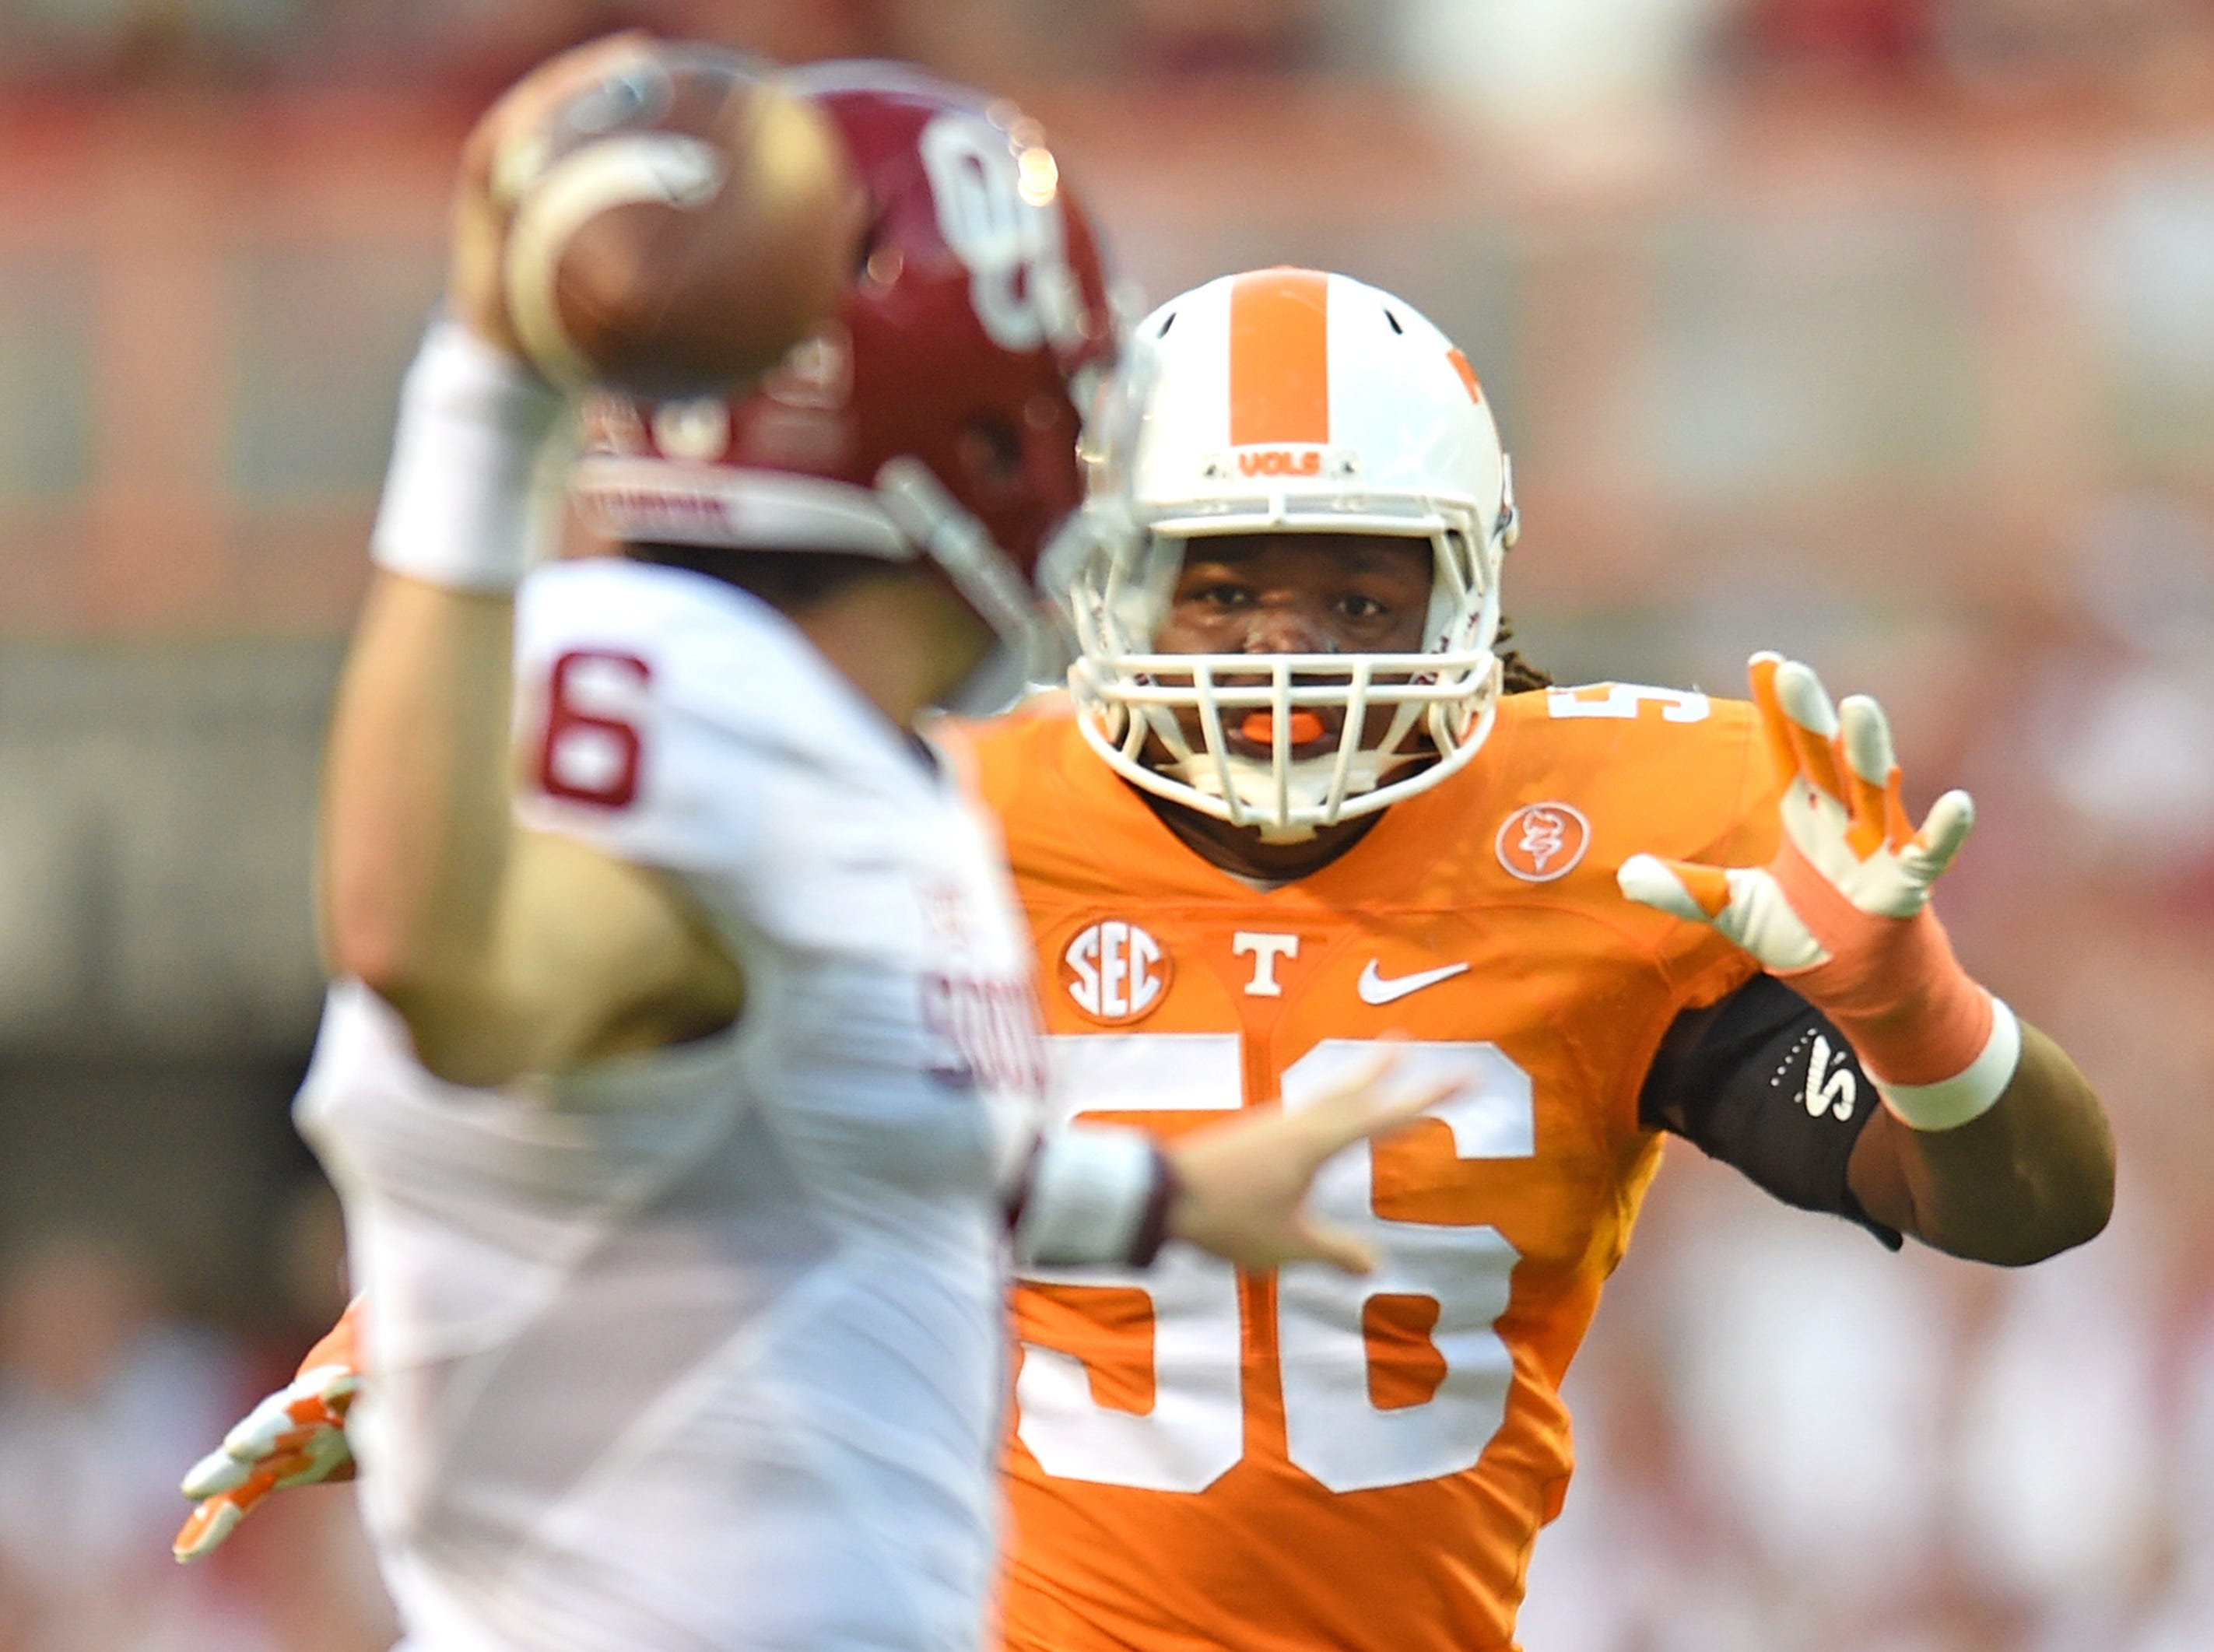 Tennessee defensive lineman/linebacker Curt Maggitt (56) rushes Oklahoma quarterback Baker Mayfield (6) during the first half at Neyland Stadium on Saturday, Sept. 12, 2015.